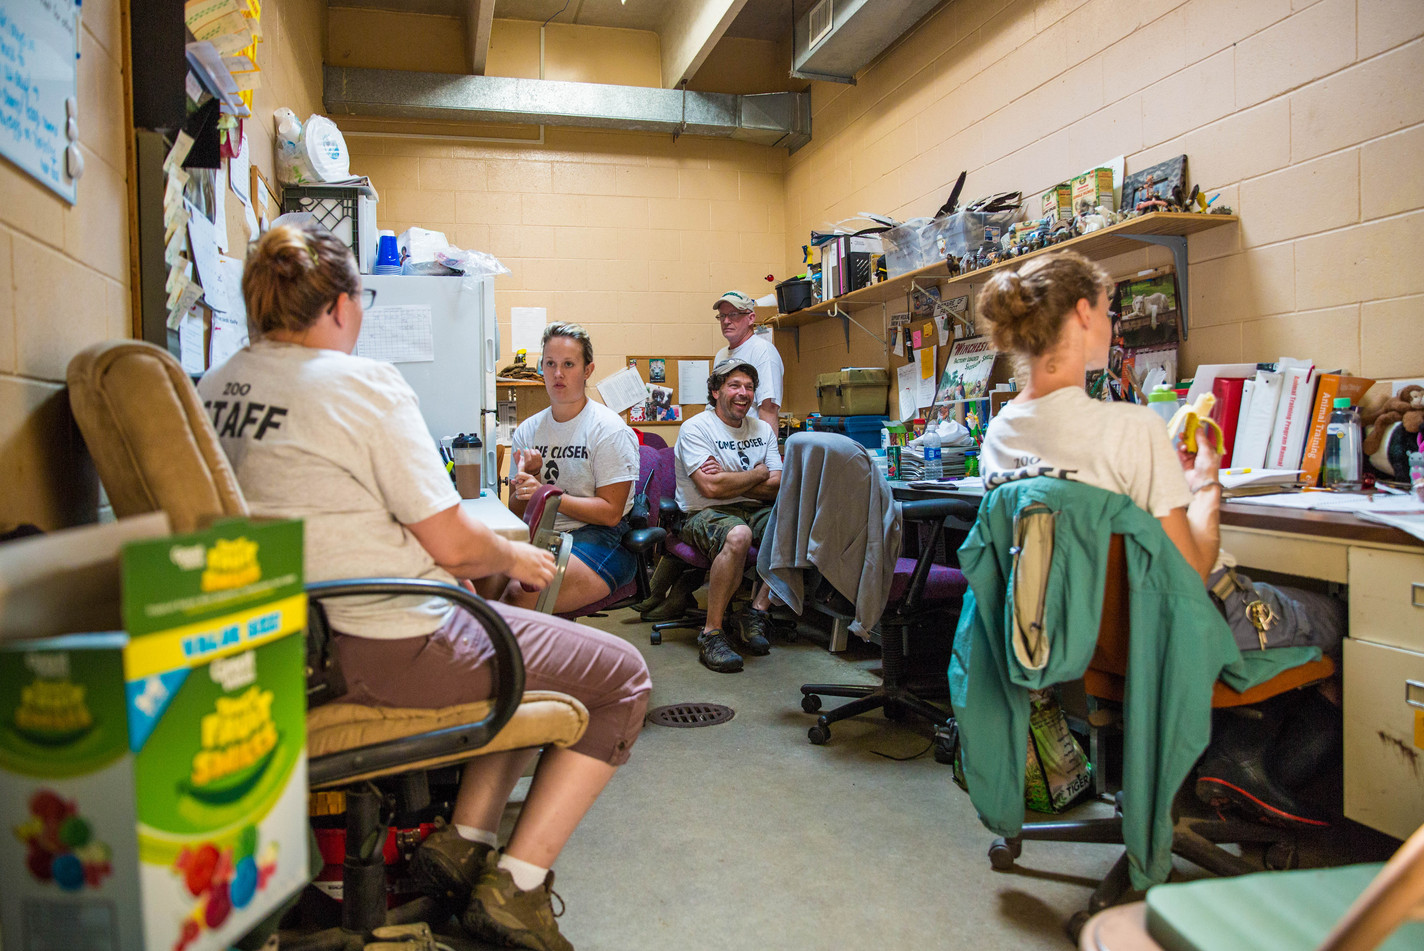 (From left) JoJo Crane, Olivia Reimers, John Gilman, Bill Gallagher and Jen Giessinger take a break after cleaning all the enclosures for the day and discuss plans for the day on Wednesday morning, Aug. 2 at Bramble Park Zoo. ©2017 Grace Ramey